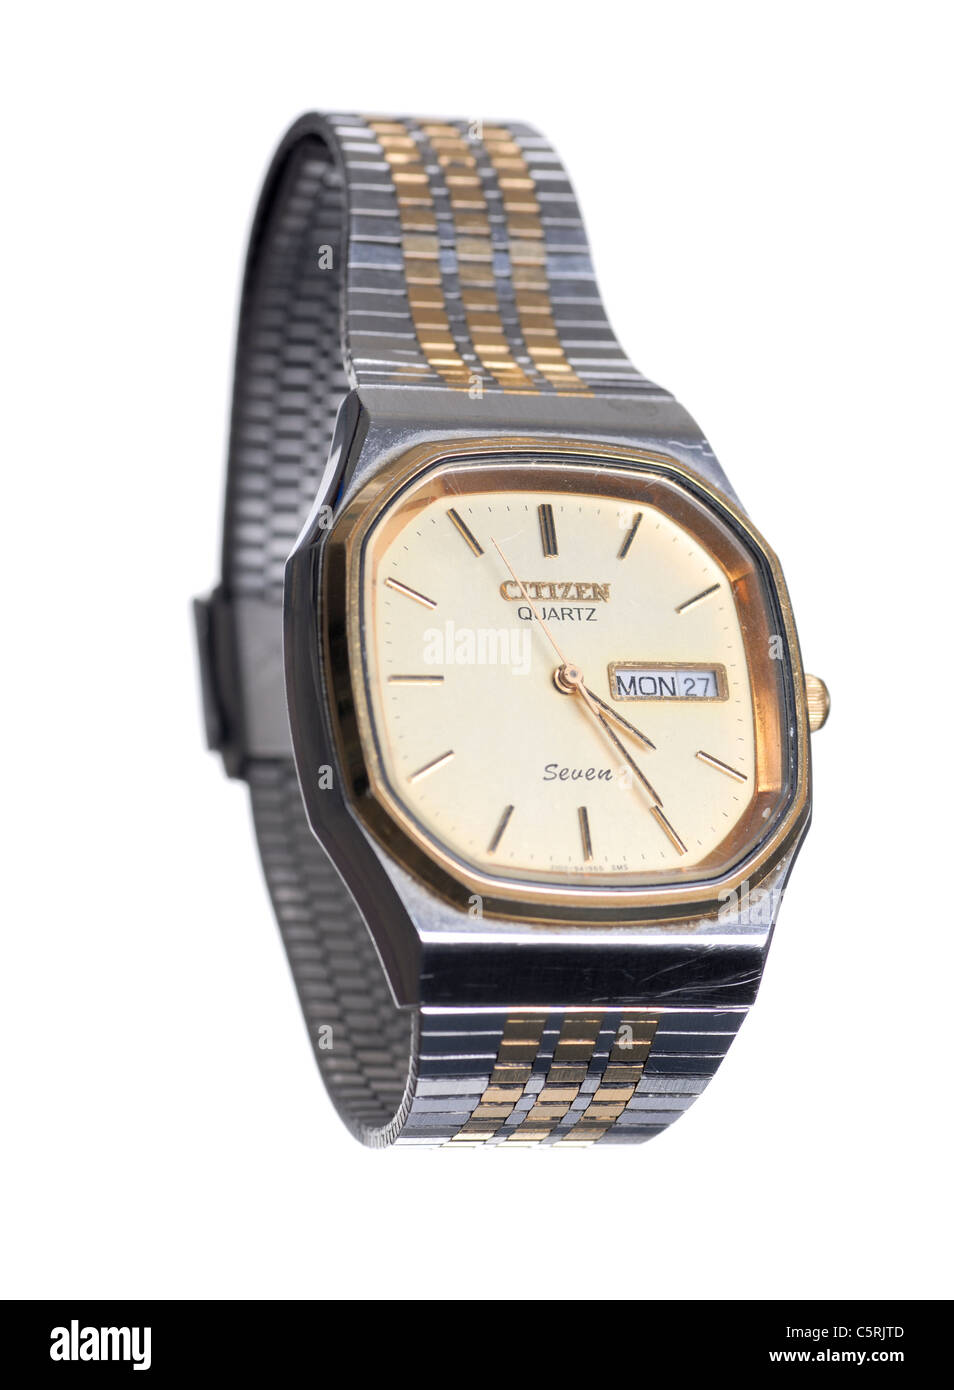 citizen watch cutout - Stock Image